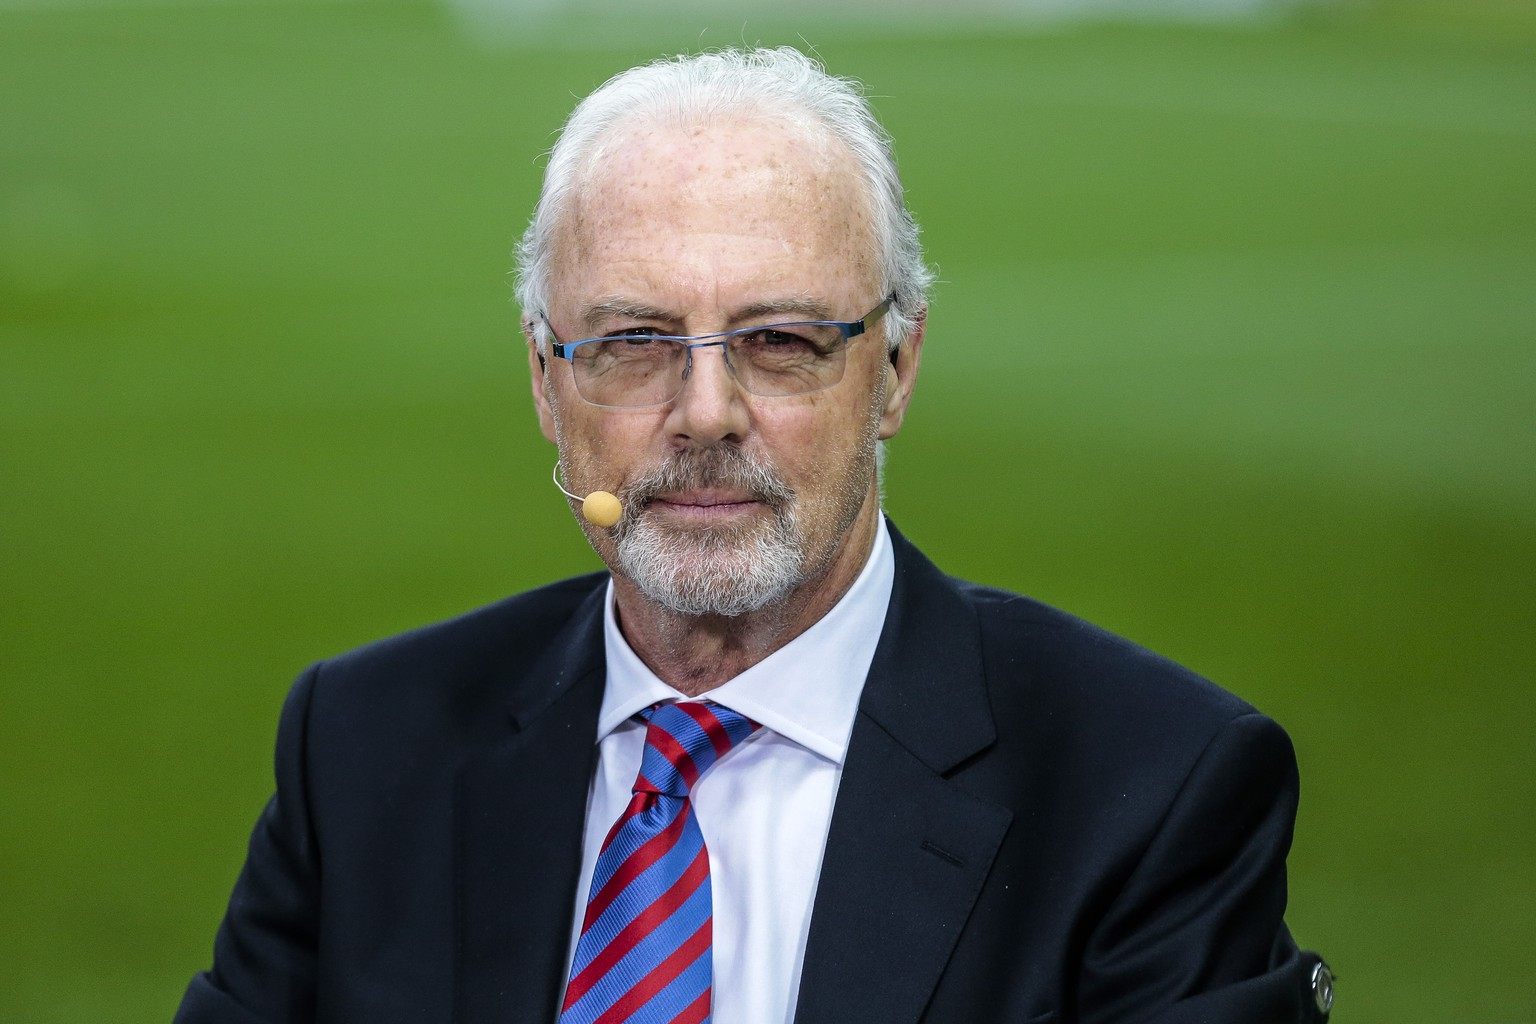 FILE - The May 17, 2014 photo shows German soccer legend Franz Beckenbauer attending a television show prior to the German Soccer Cup Final between  Bayern Munich and Borussia Dortmund  in  Berlin. FIFA has lifted Franz Beckenbauer's ban from all football-related activity for failing to help an investigation of alleged corruption in the 2018 and 2022 World Cup votes, the German great's manager said on Friday June 27, 2014. Football's governing body informed Beckenbauer on Friday that the ban was lifted with immediate effect, manager Marcus Hoefl said in a statement posted via his Twitter feed.  (AP Photo/Markus Schreiber)